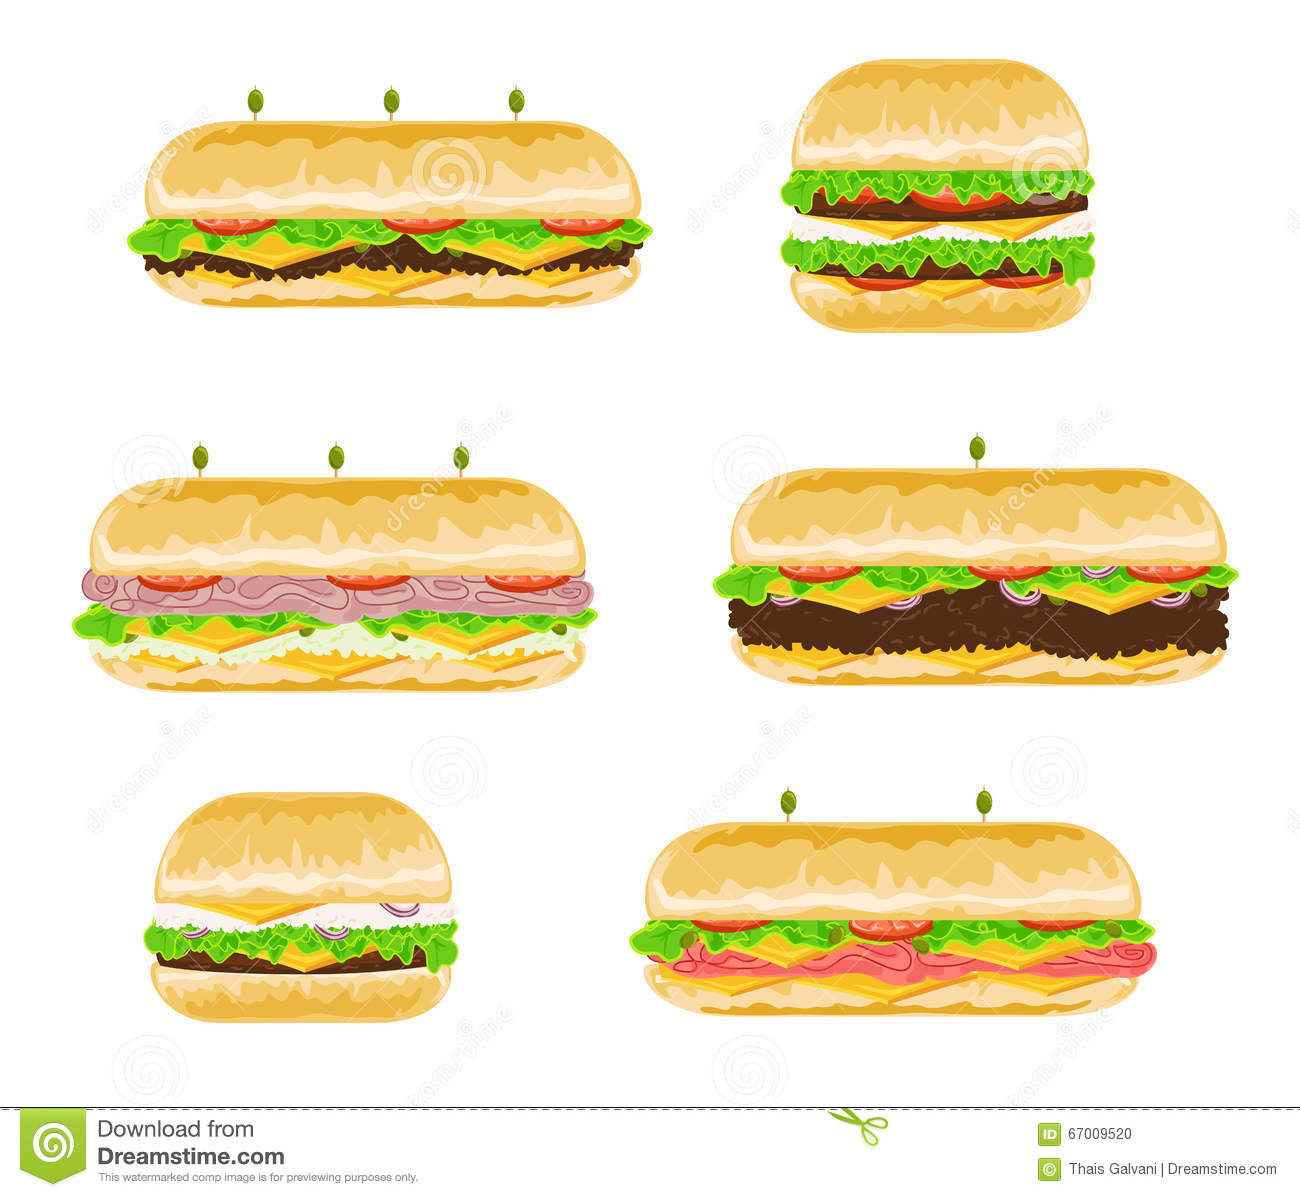 Types And Flavours Of Sandwiches Stock Vector - Image: 67009520